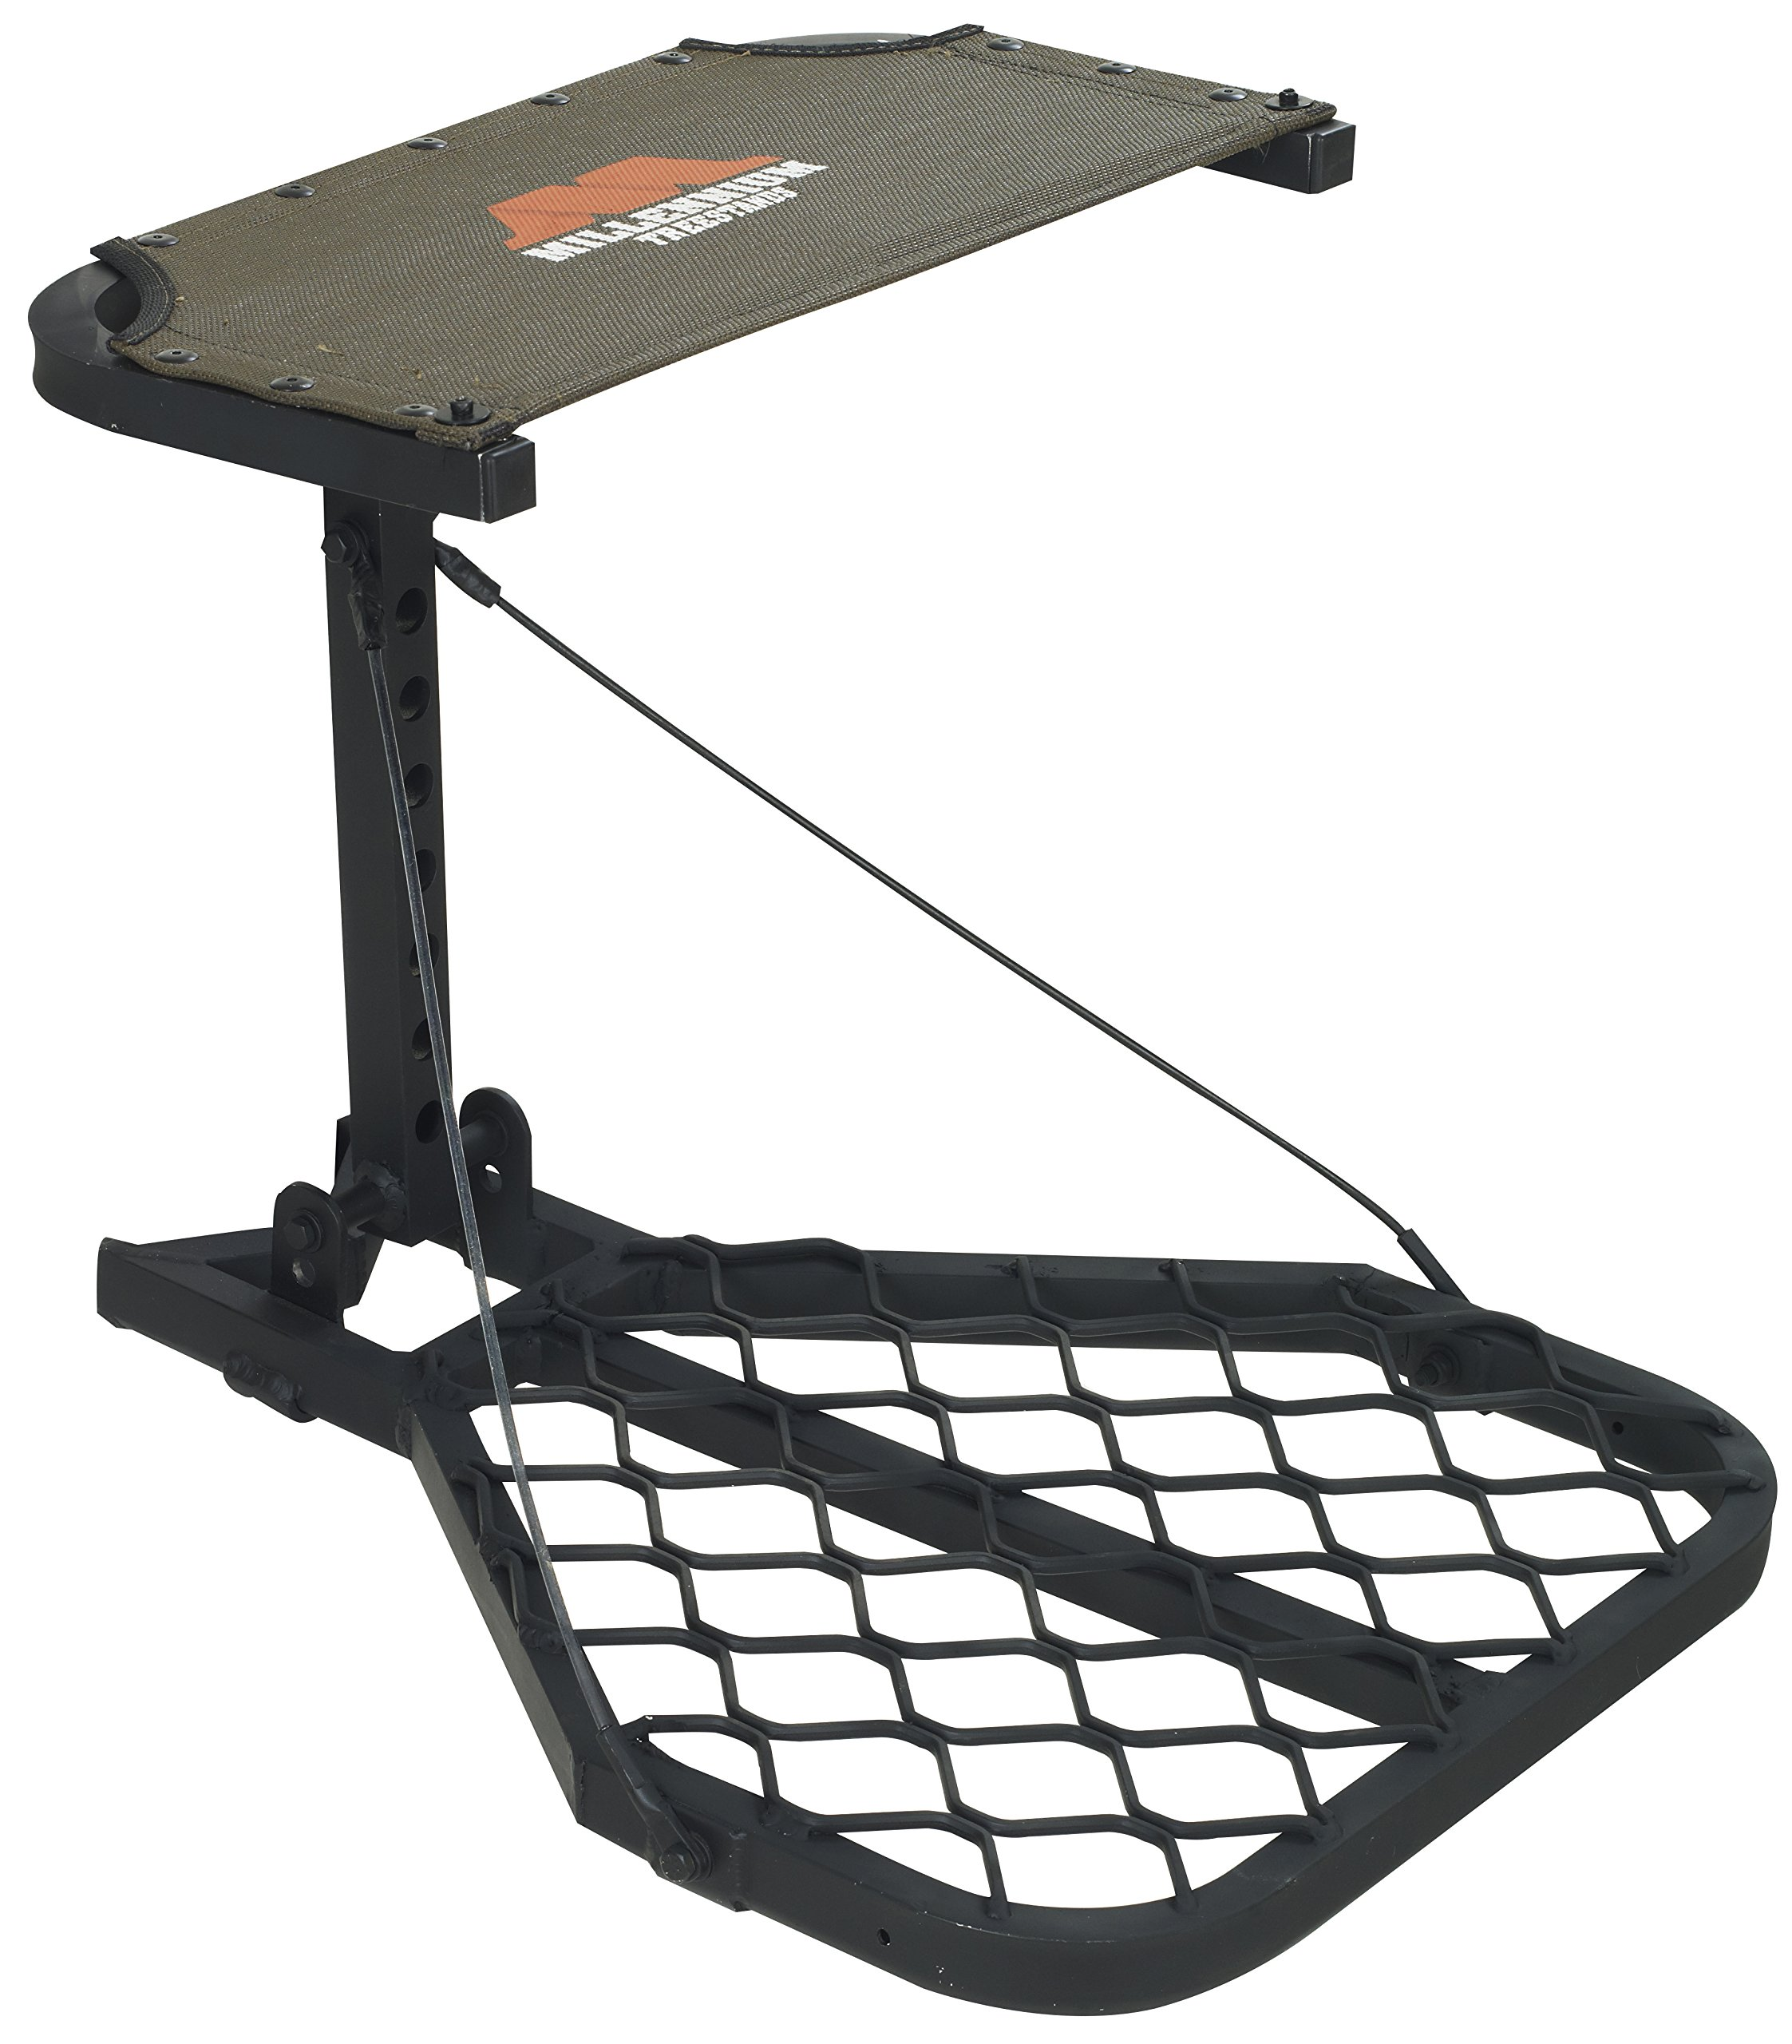 Millennium Treestands M7 Microlite Hang-On Tree Stand (Includes SafeLink Safety Line) by Millennium Treestands (Image #1)